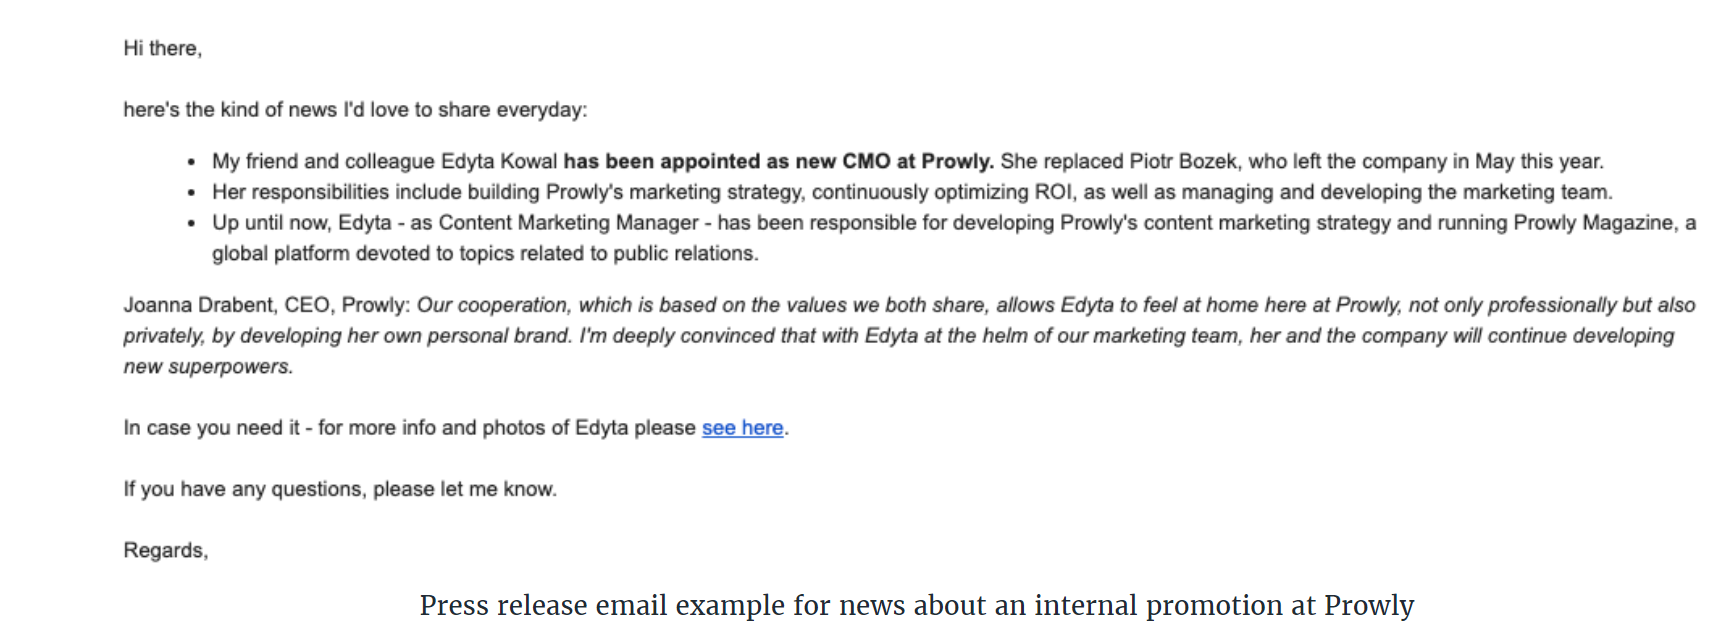 Sample press release email